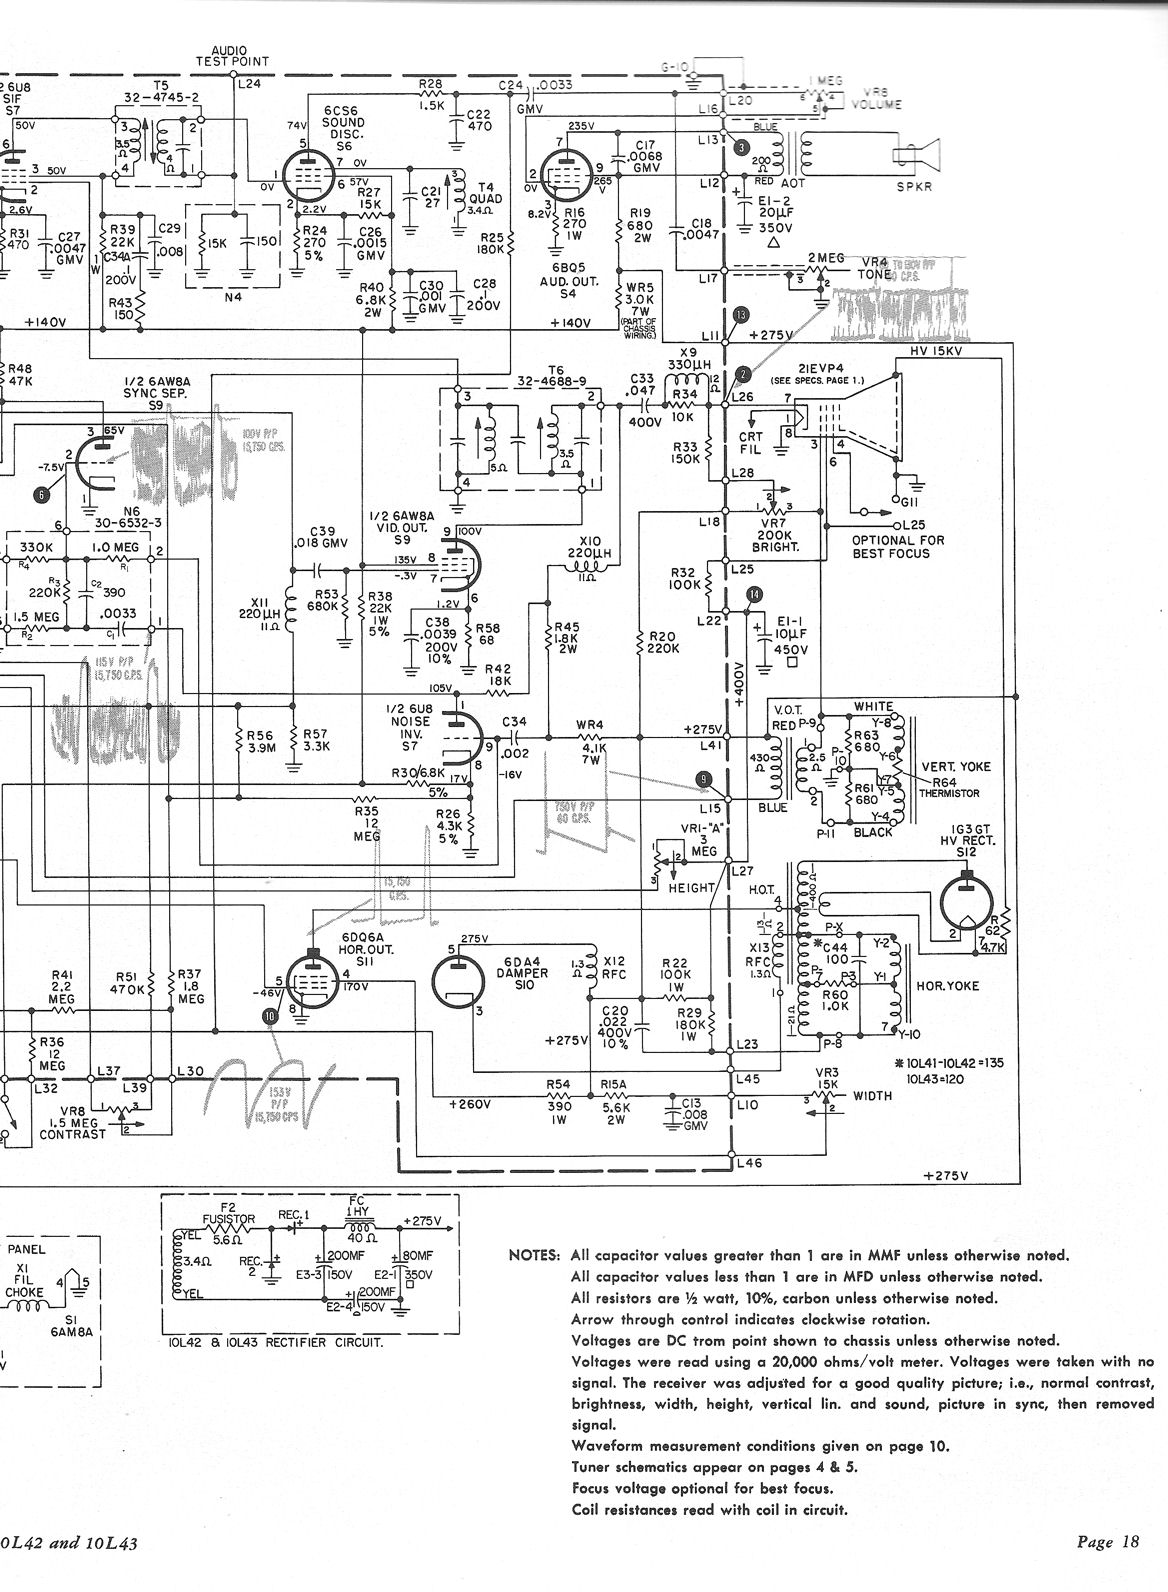 hight resolution of  also got an original philco service manual below are two pages containing the philco schematic to save the files on your computer right click on the